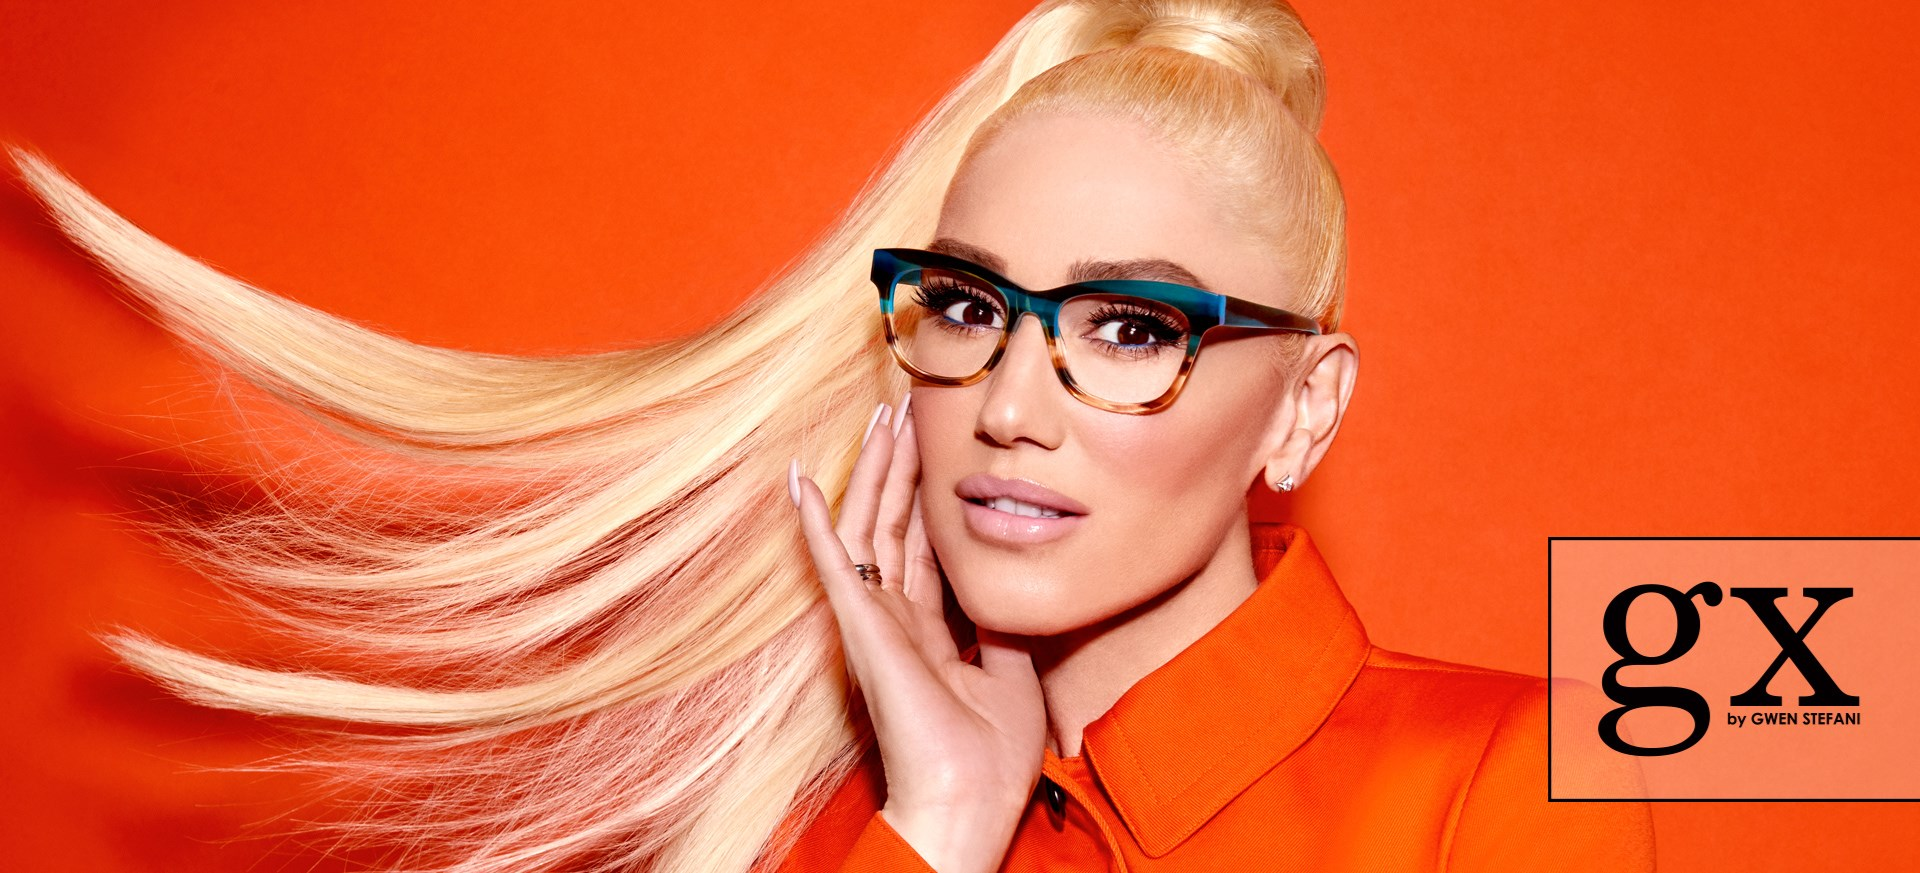 gx by Gwen Stefani Womens